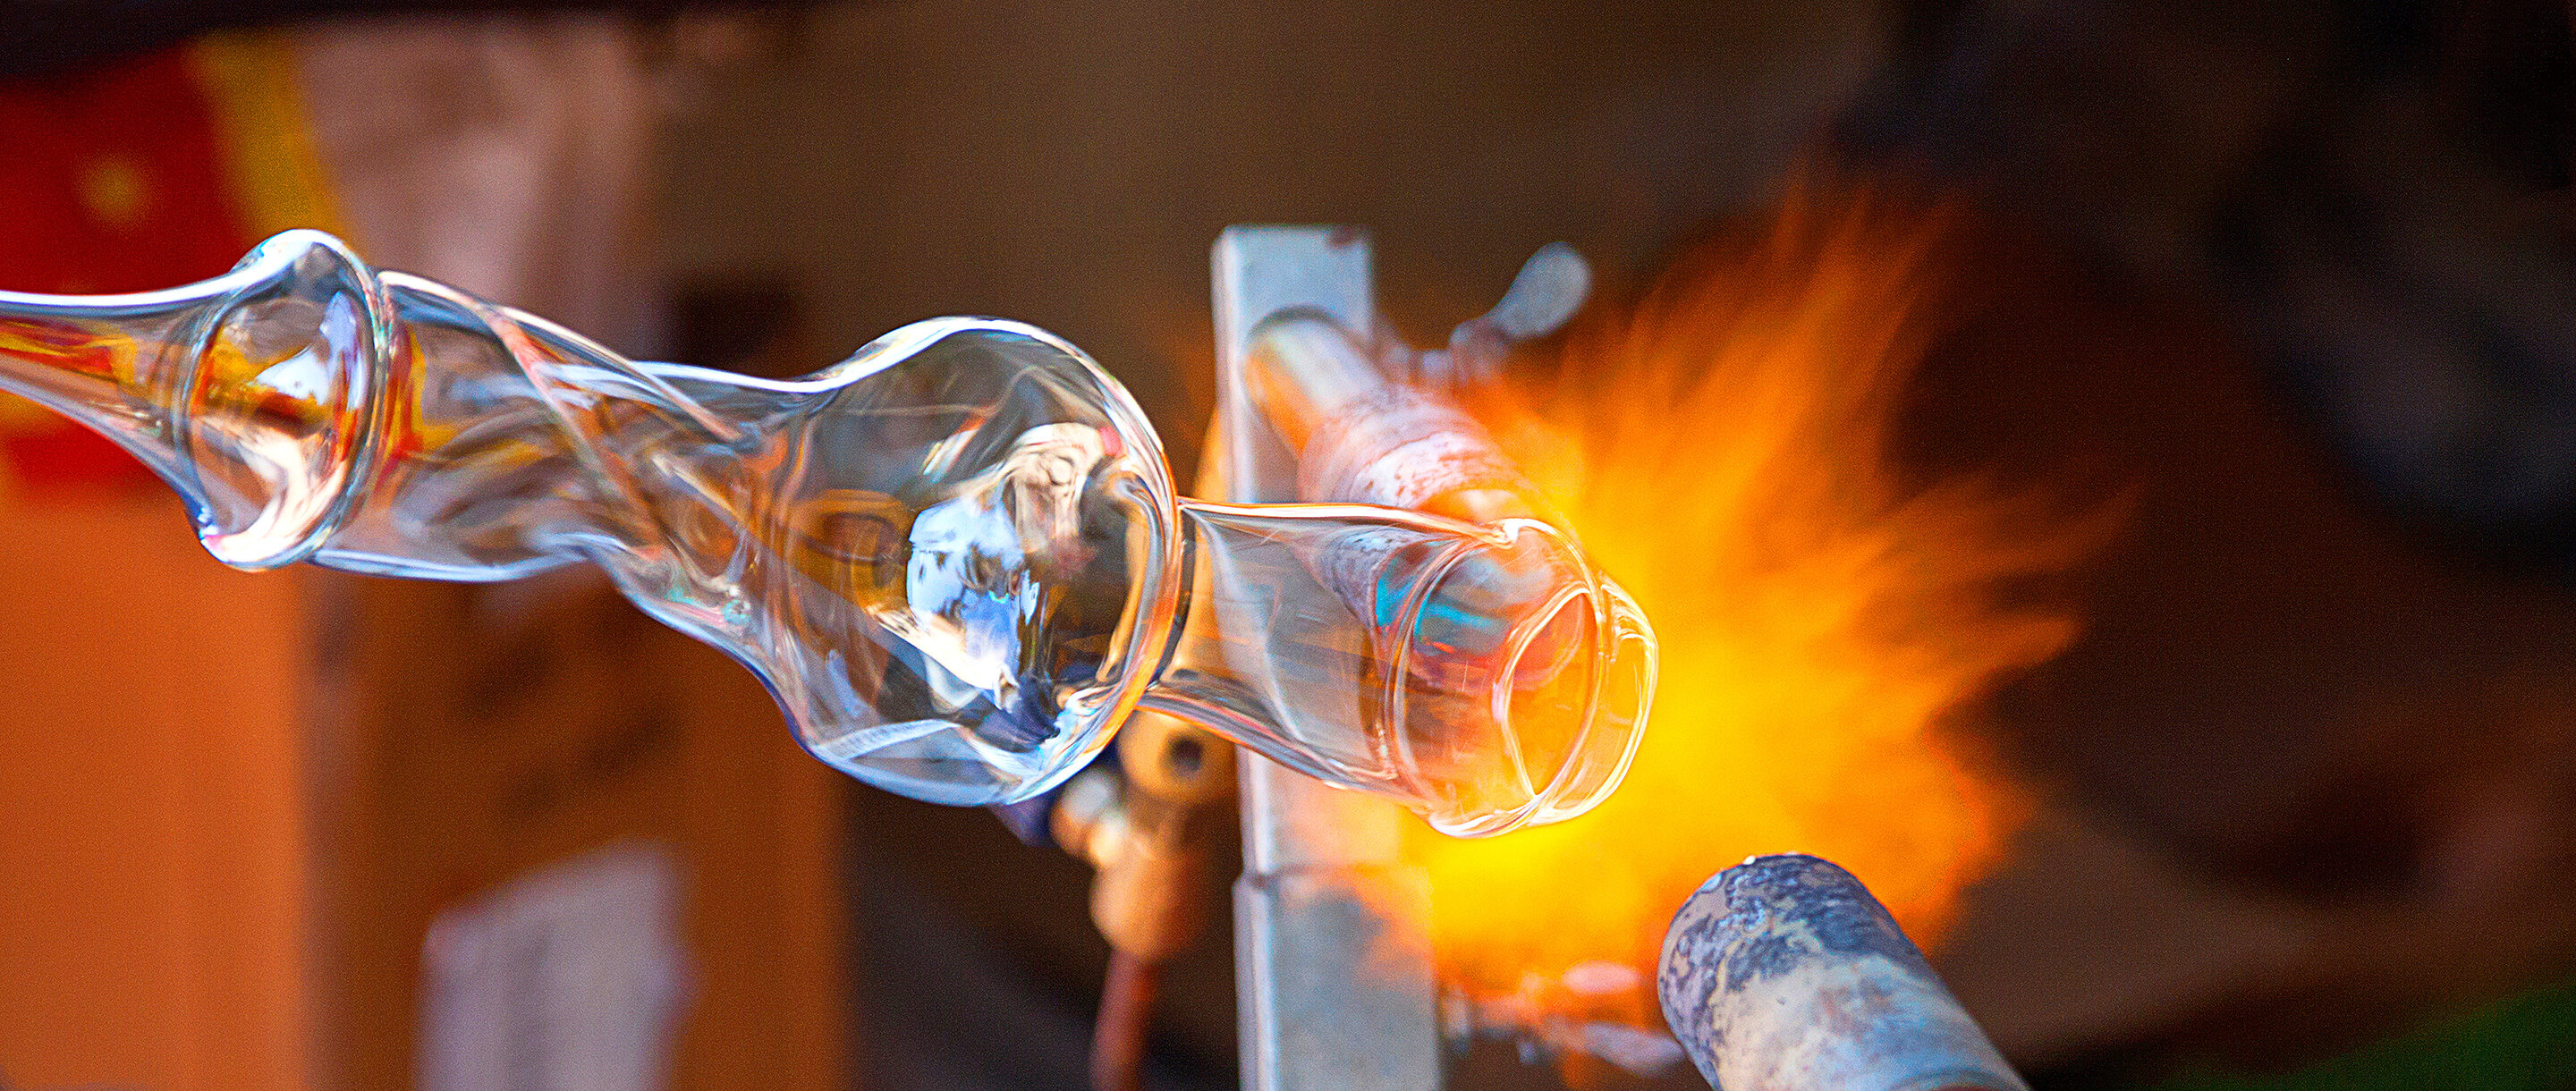 A glass object being shaped by a blowtorch.]